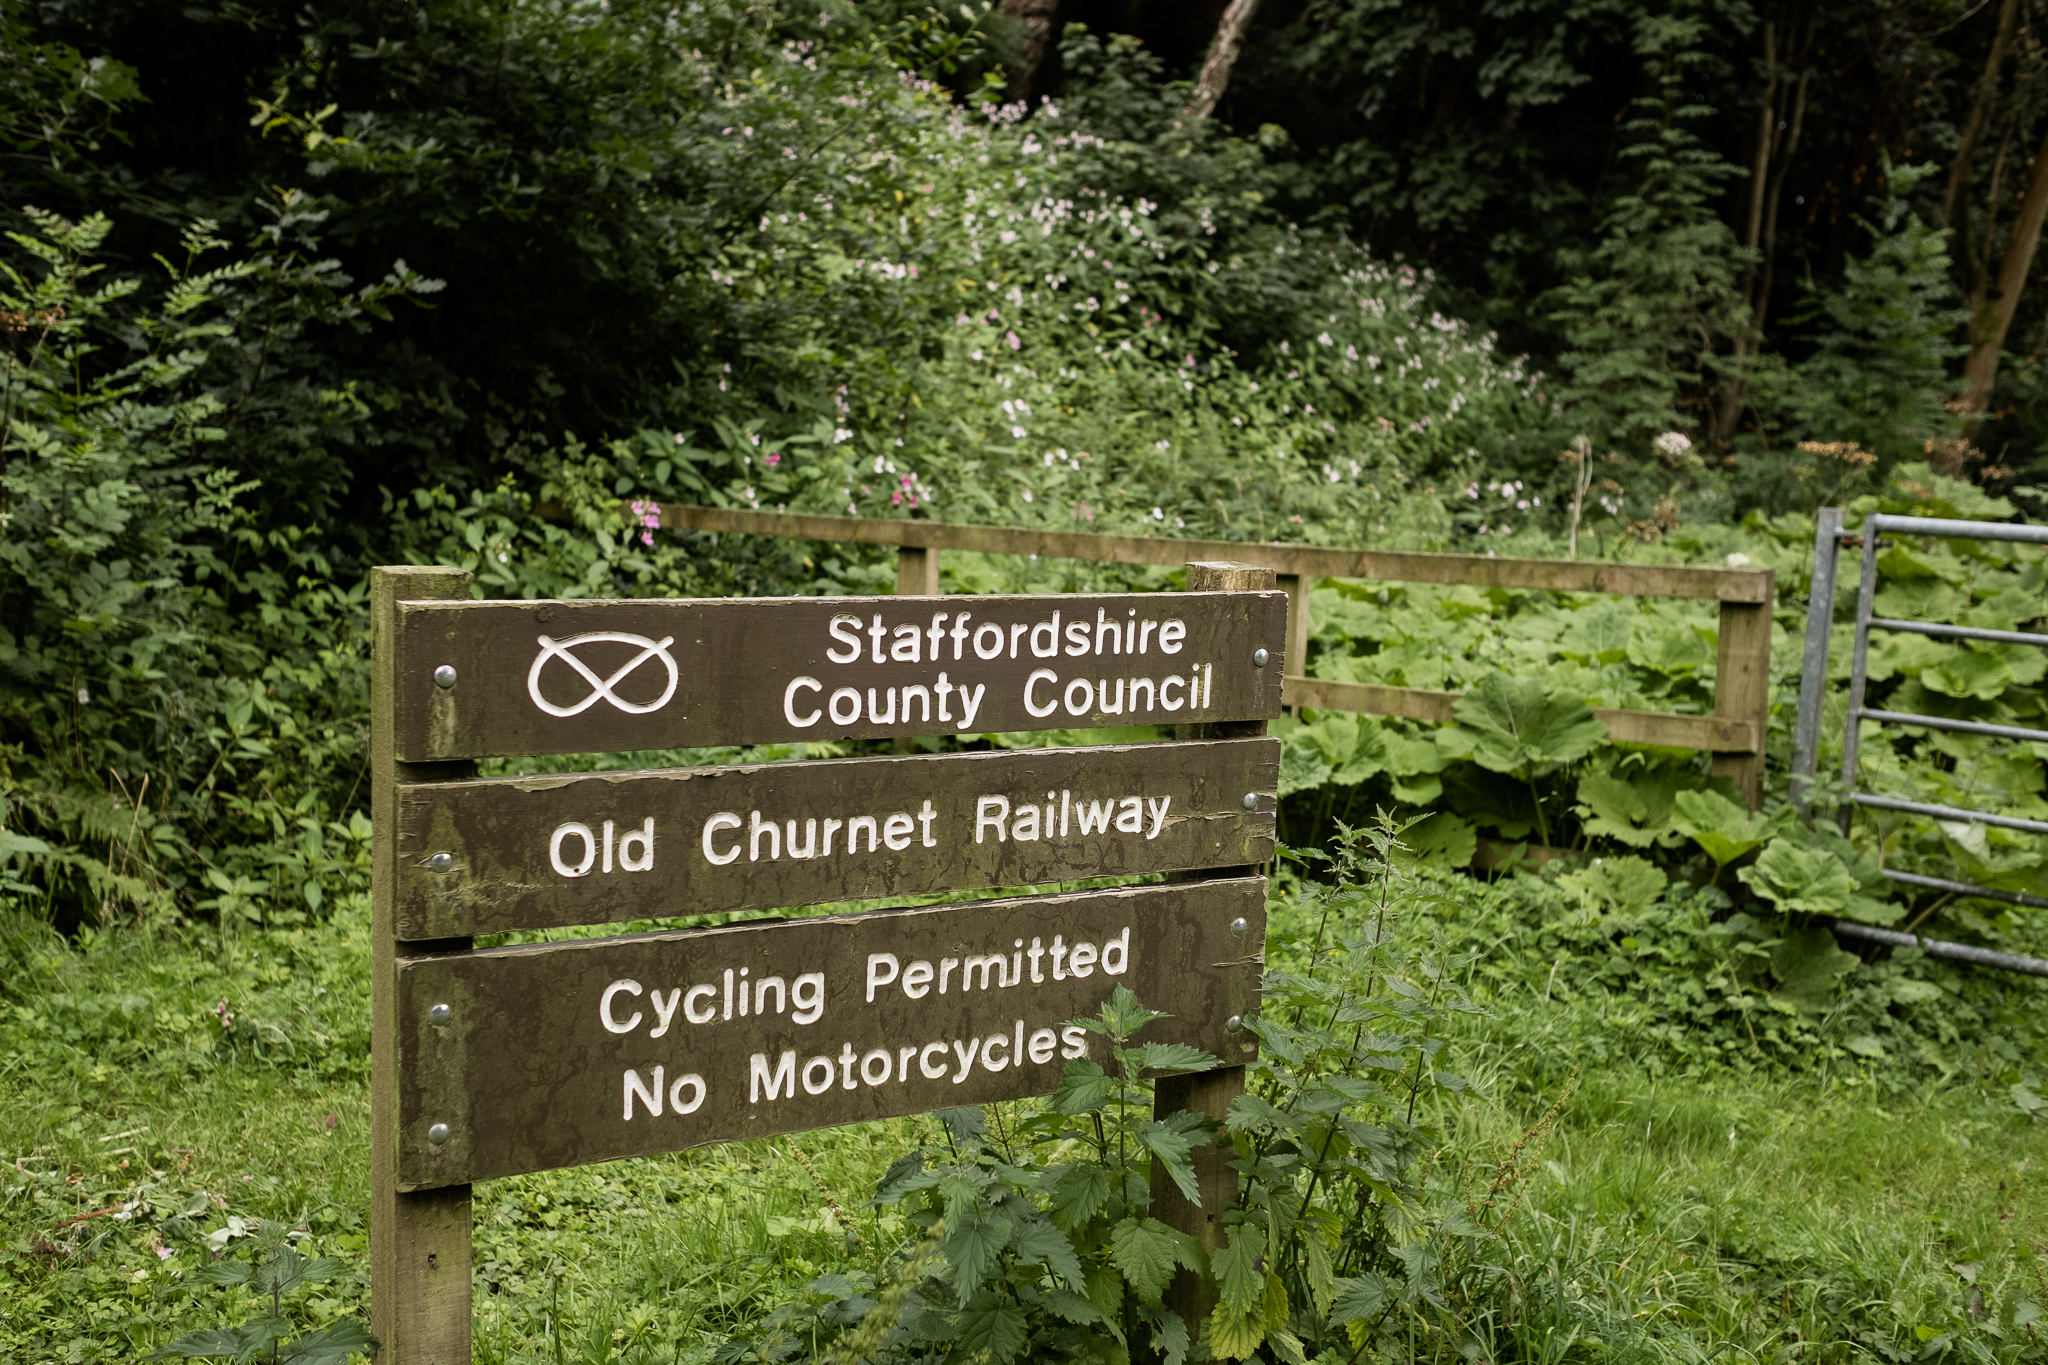 07.31.2016 Dimmingsdale Walk Photowalk Staffordshire Ramblers Retreat Trees-52.jpg